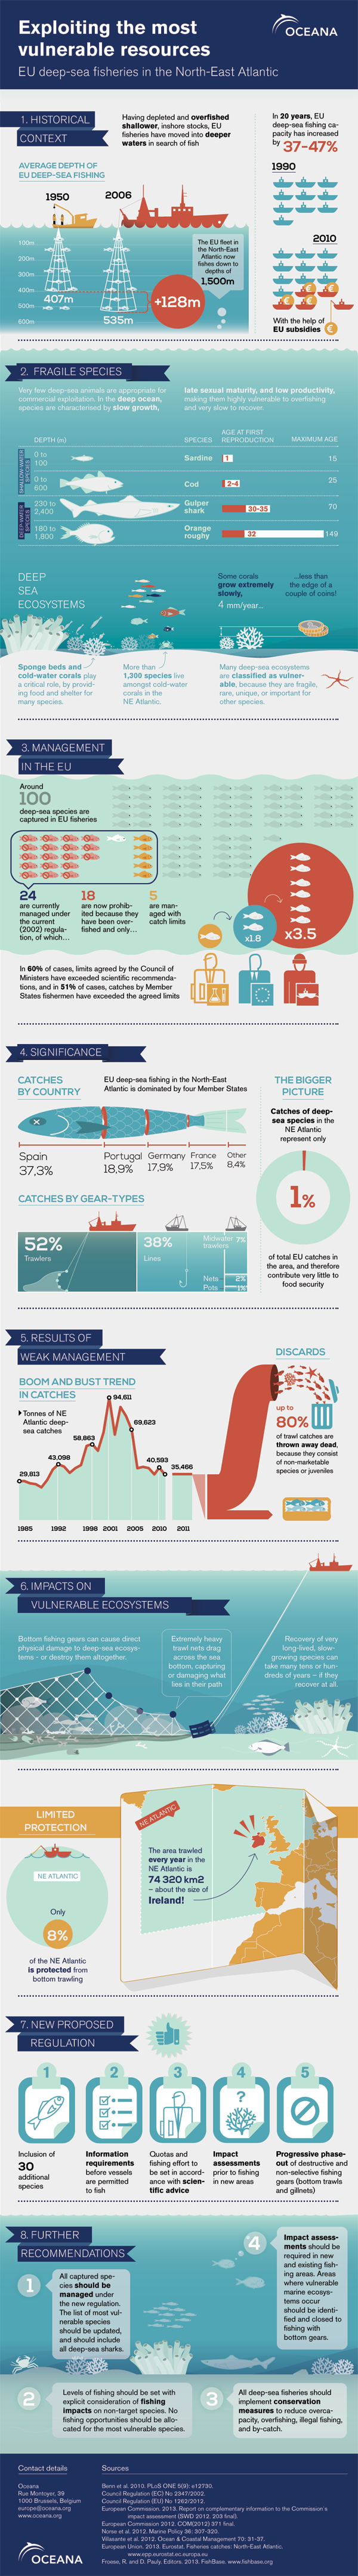 Oceana Europe deep sea fishery infographic